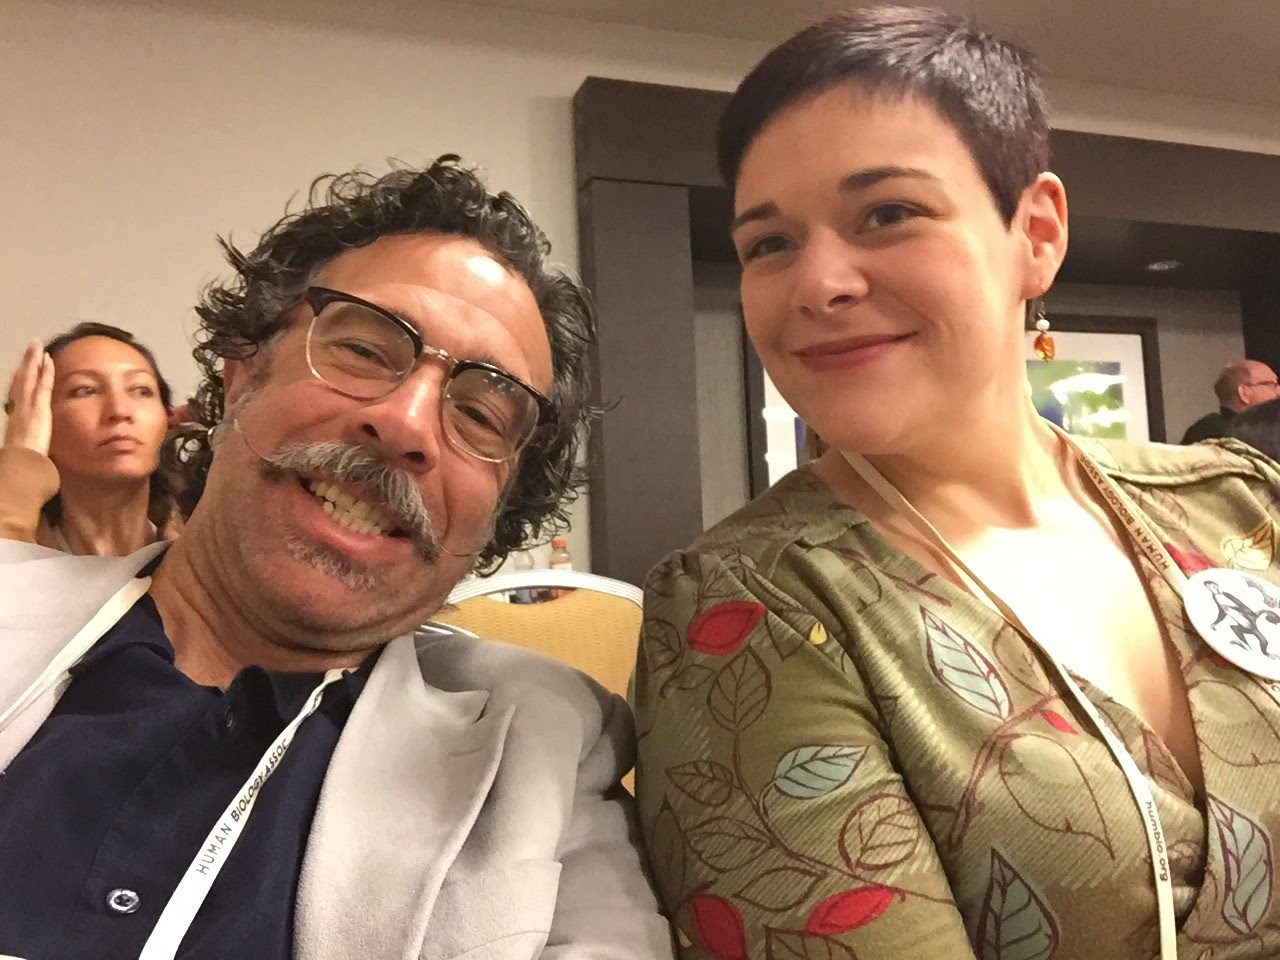 Me my good friend writing group partner Cara Ocobock at AAPA.